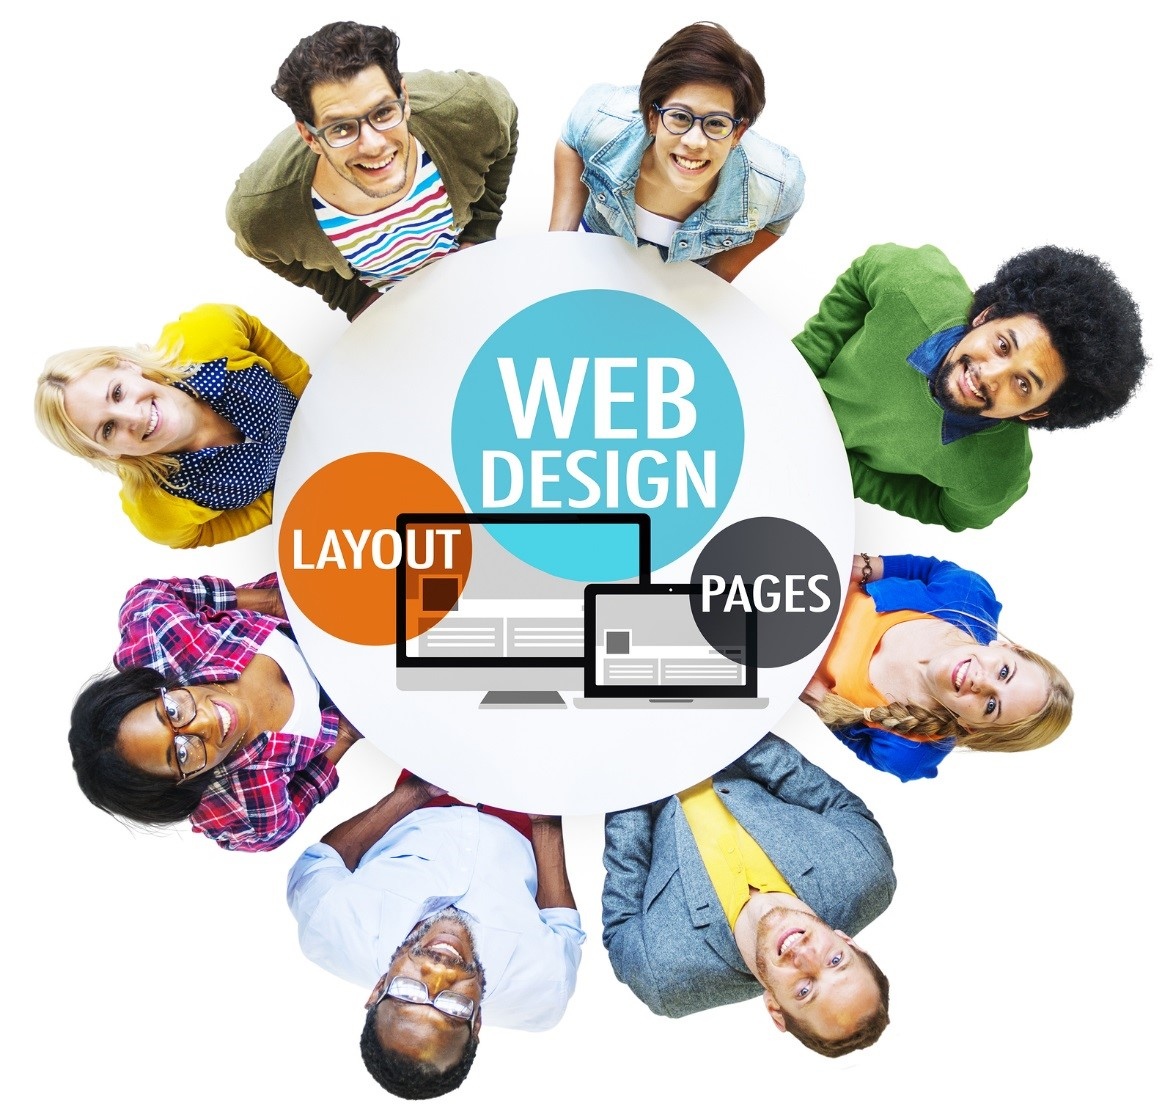 web-design-layout-pages Choosing the Right Colours for Your Website: Why Hire a Web Designer